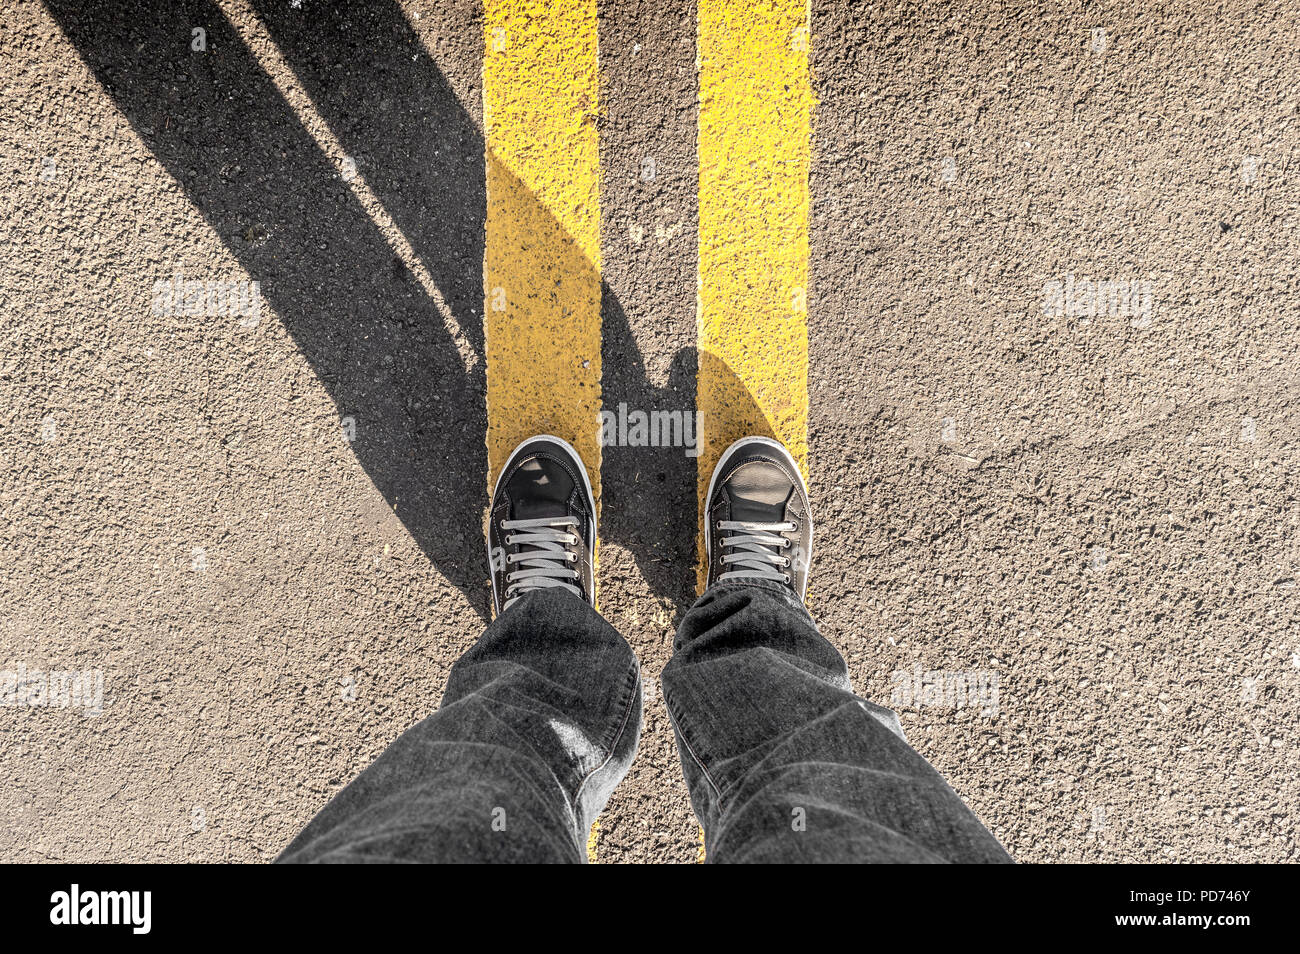 Personal perspective of person's legs and street's yellow lines - Stock Image